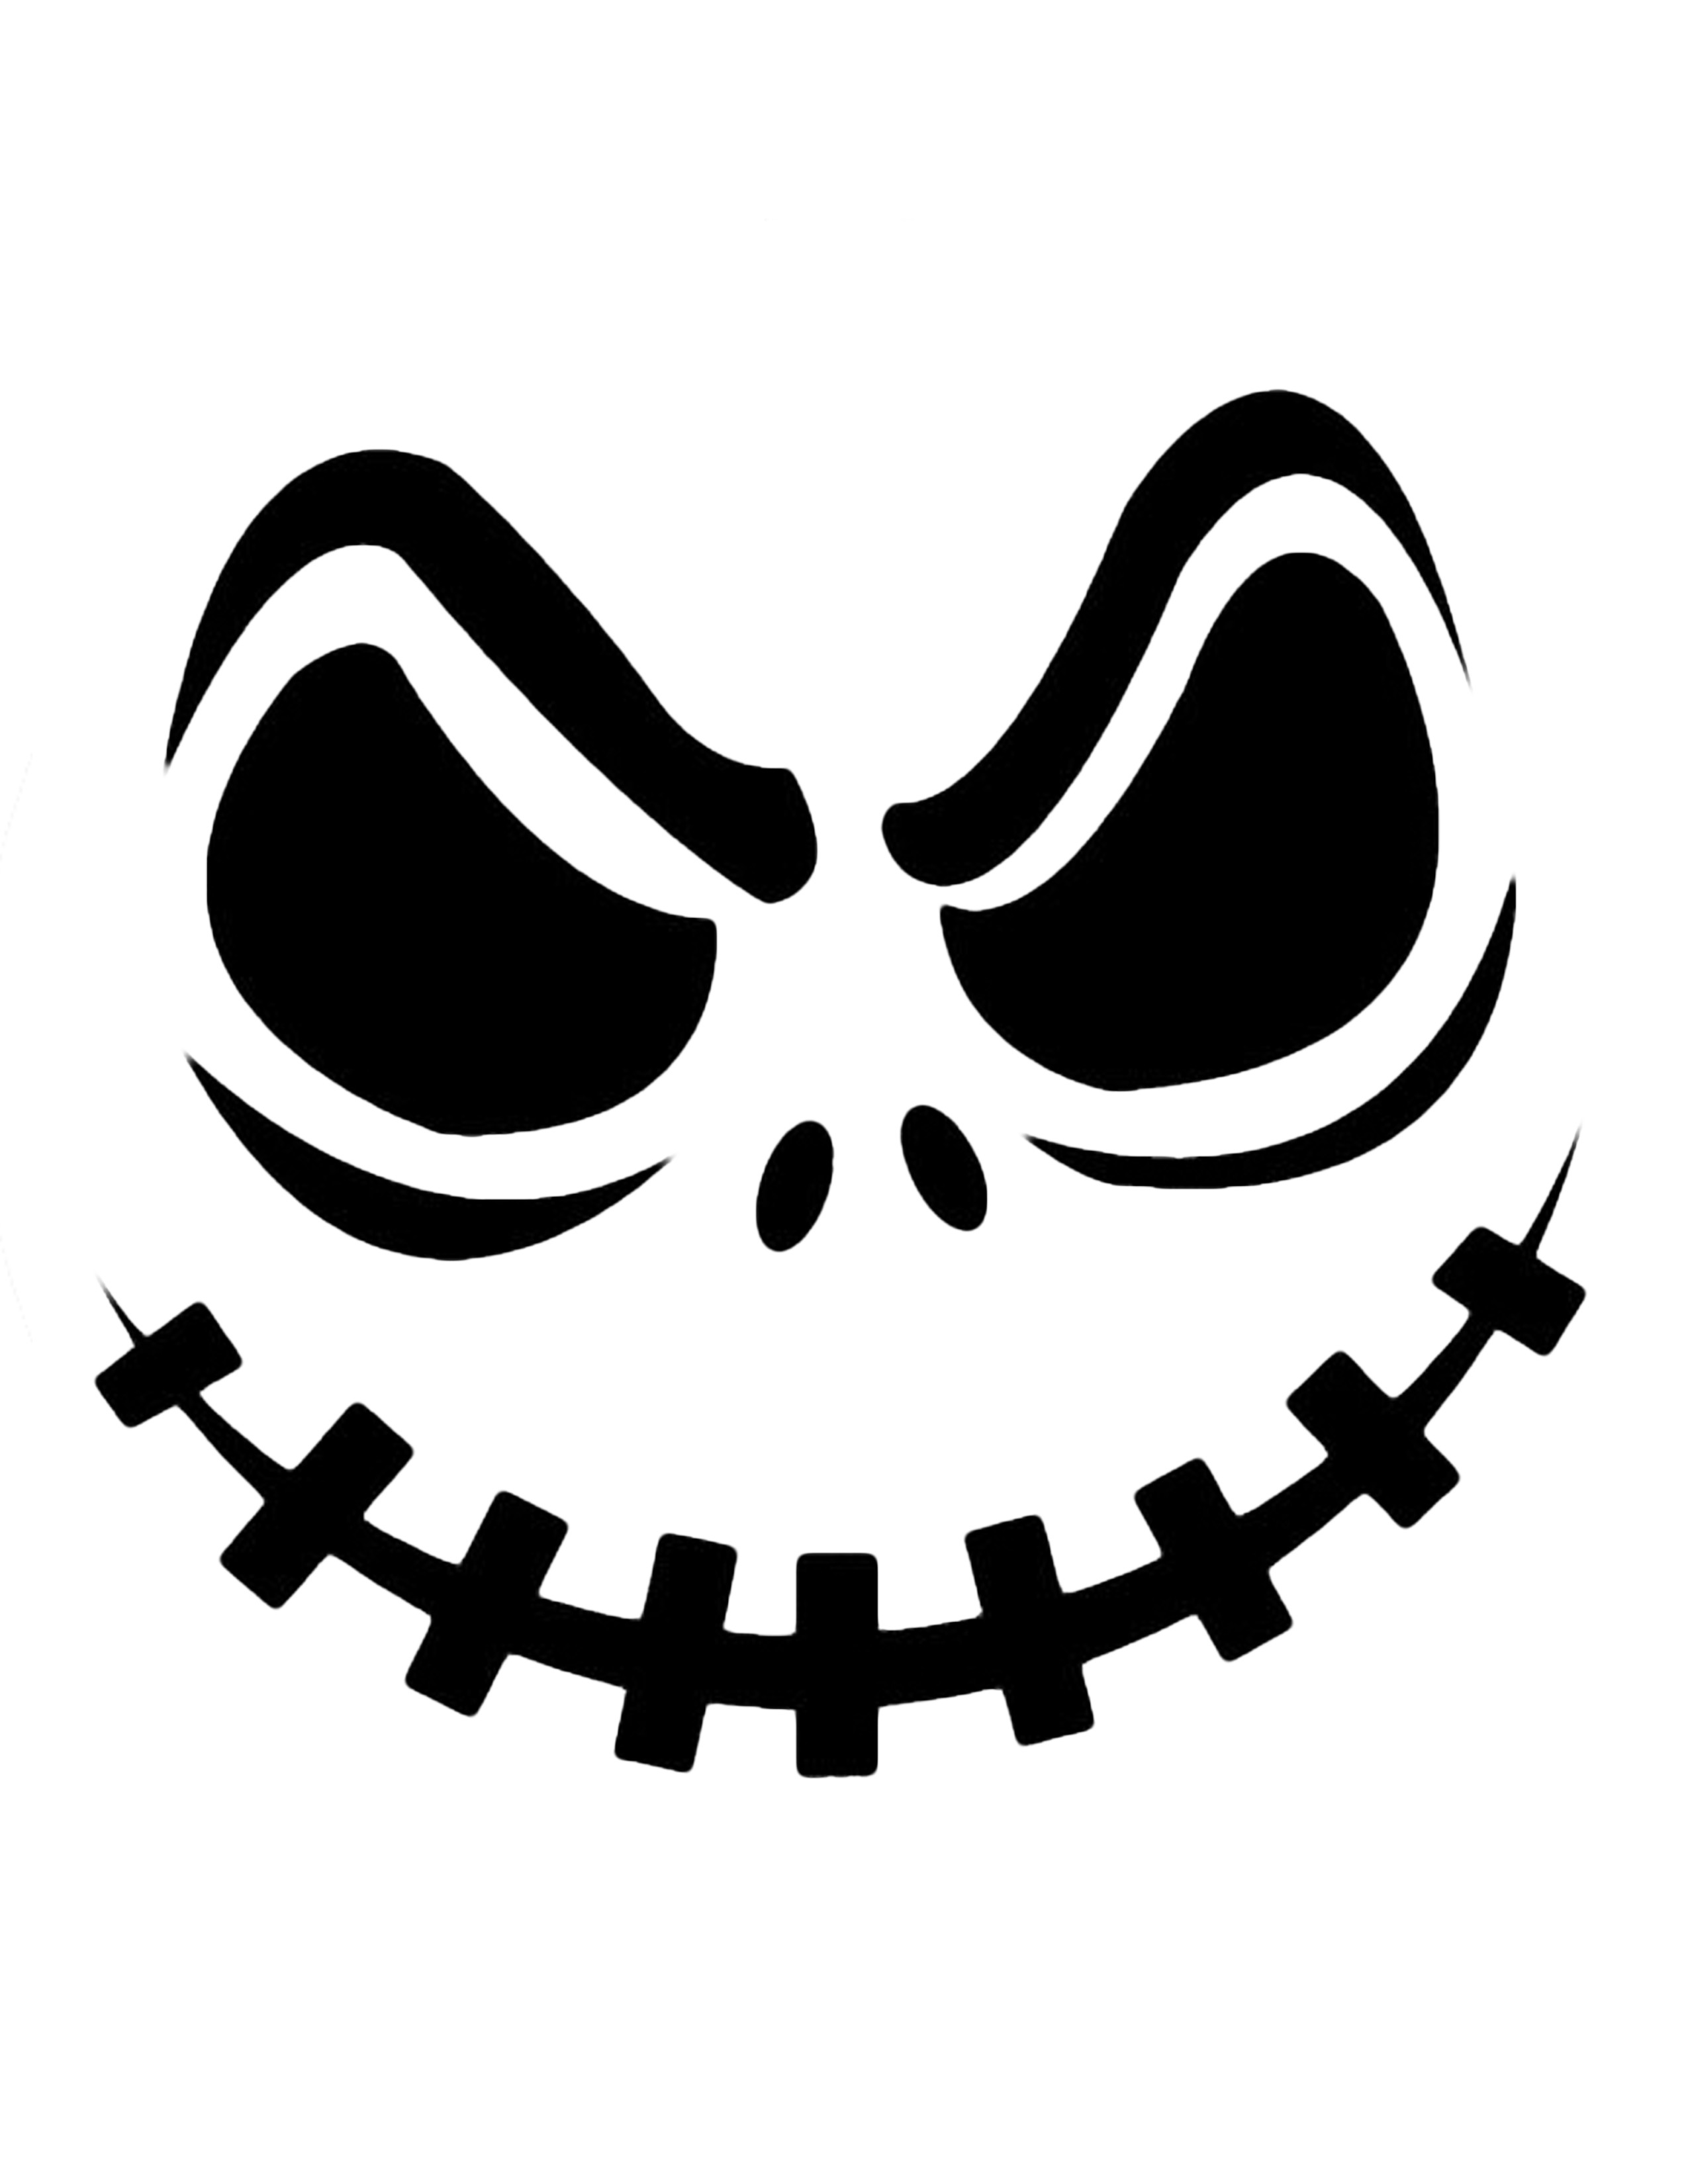 Pumpkin carving silhouette clipart witch face.